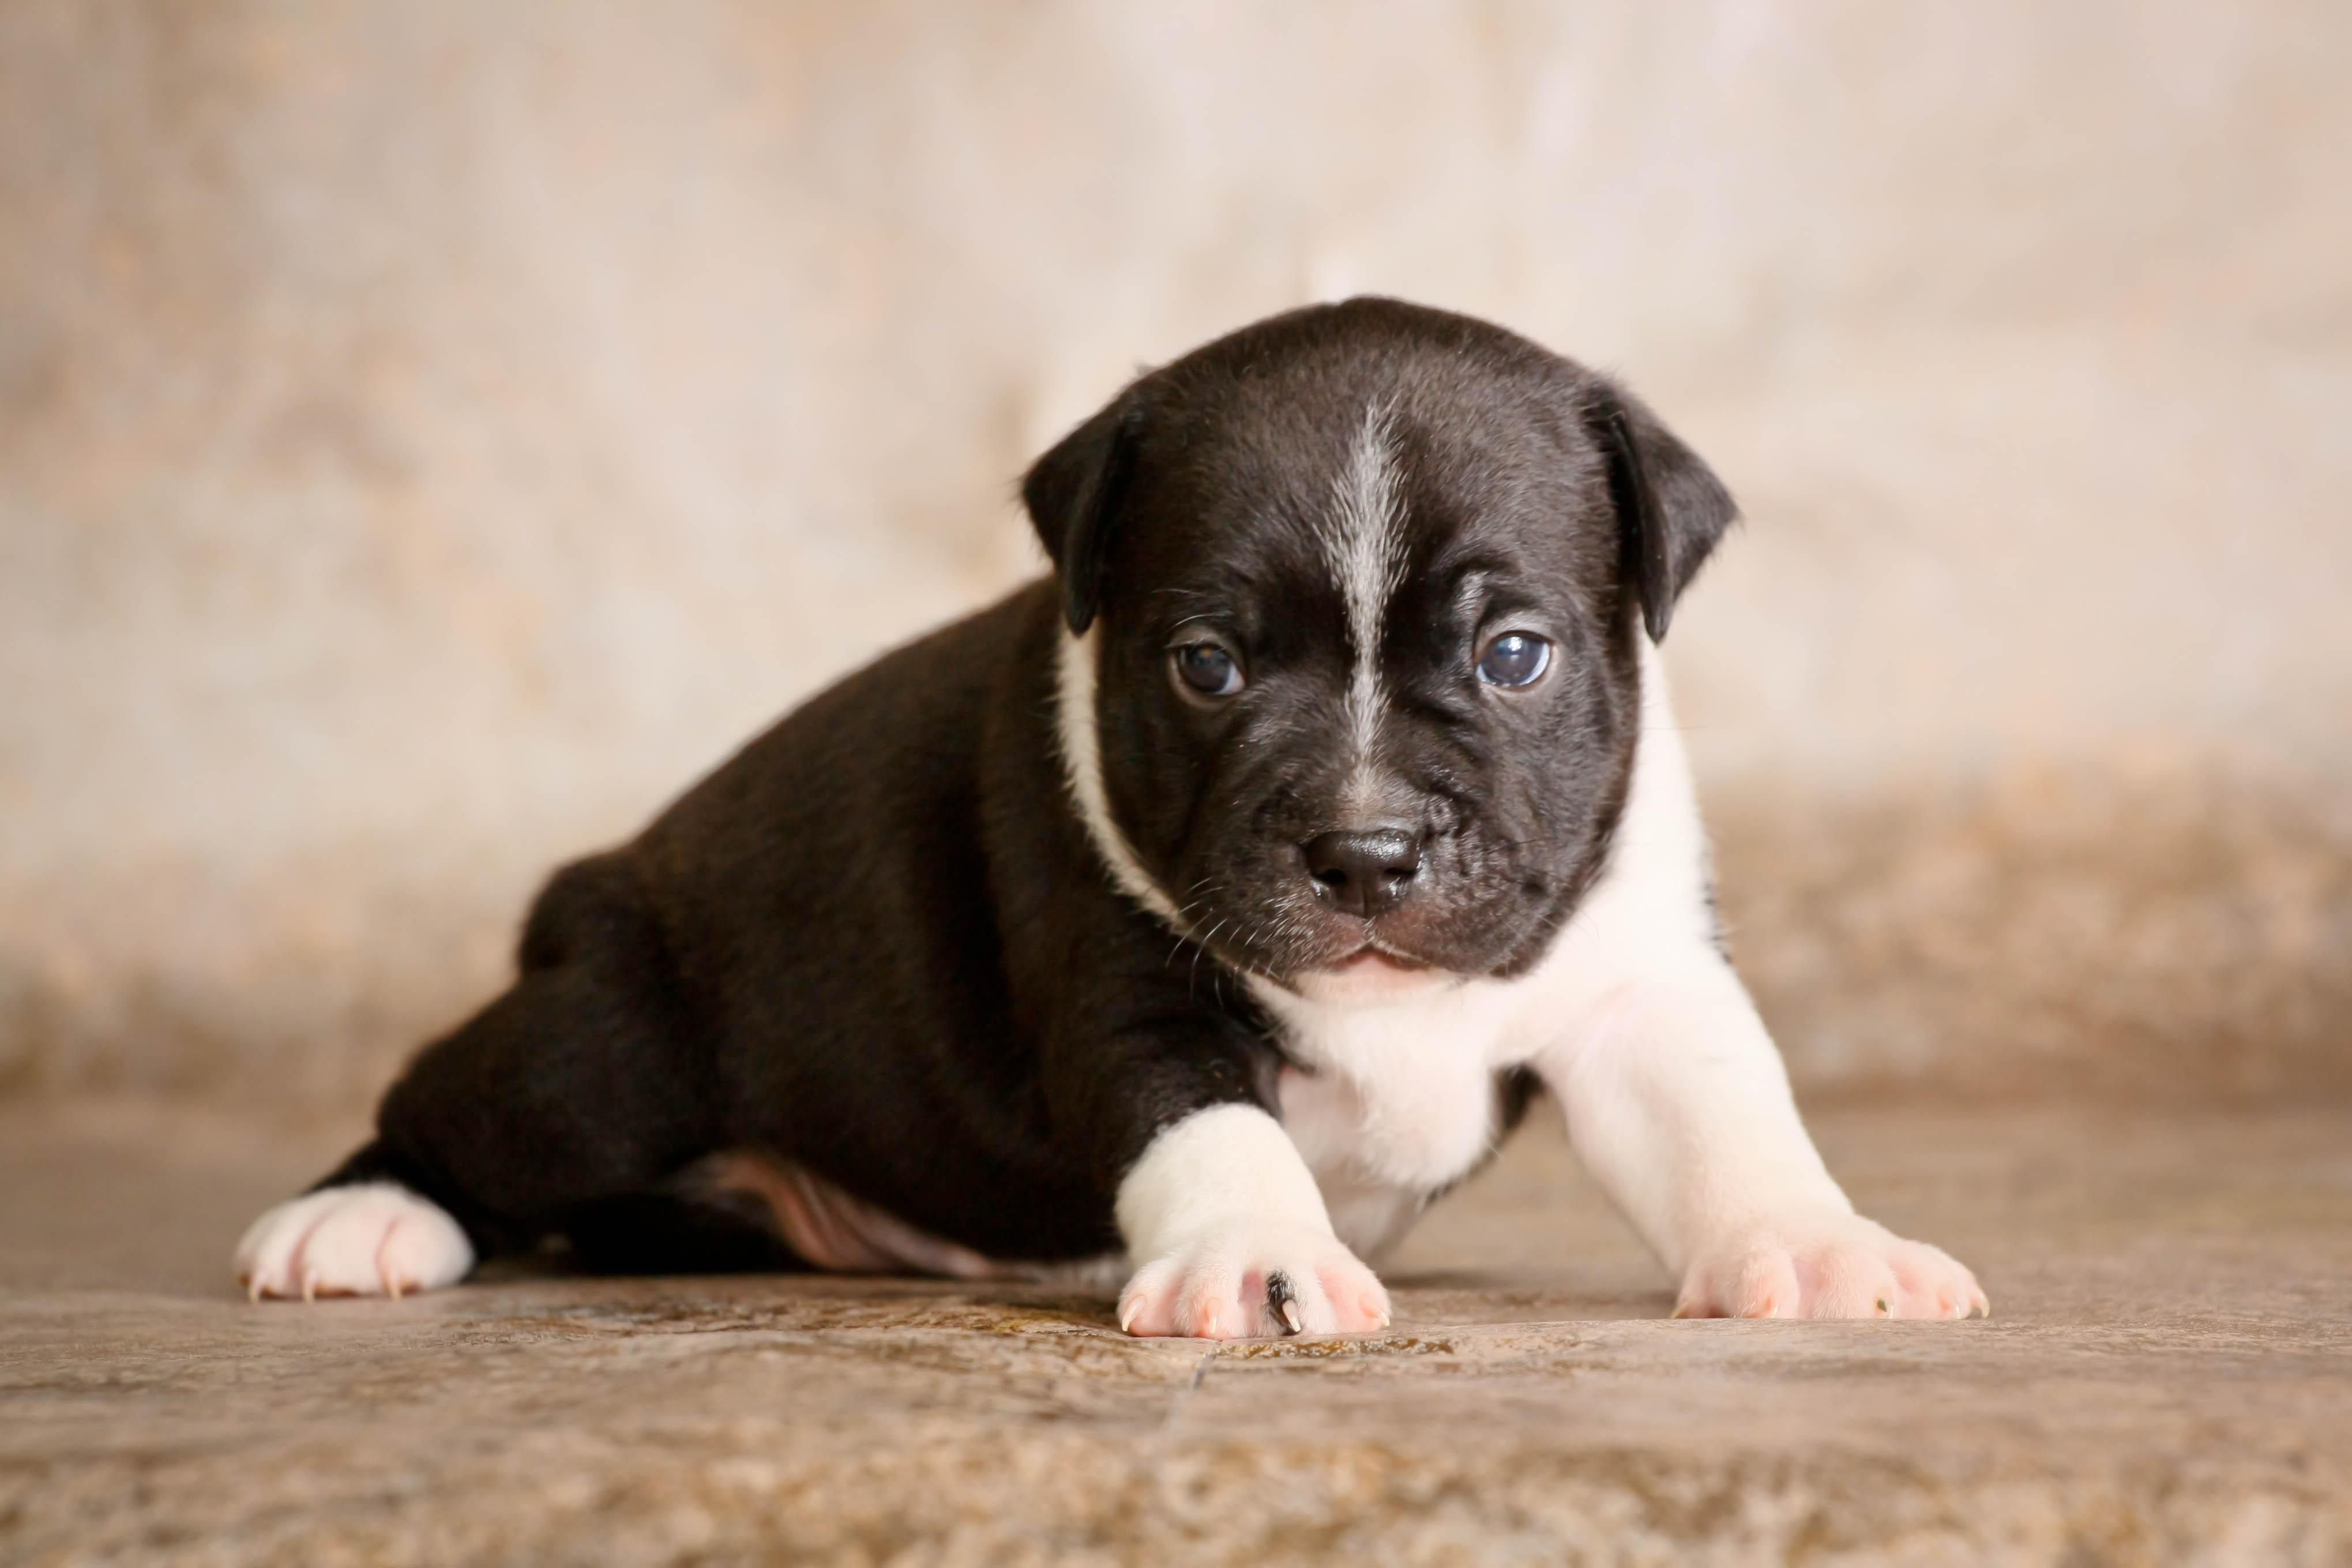 145517 download wallpaper Animals, Staffordshire Bull Terrier, Puppy, Dog, Nice, Sweetheart, Kid, Tot screensavers and pictures for free